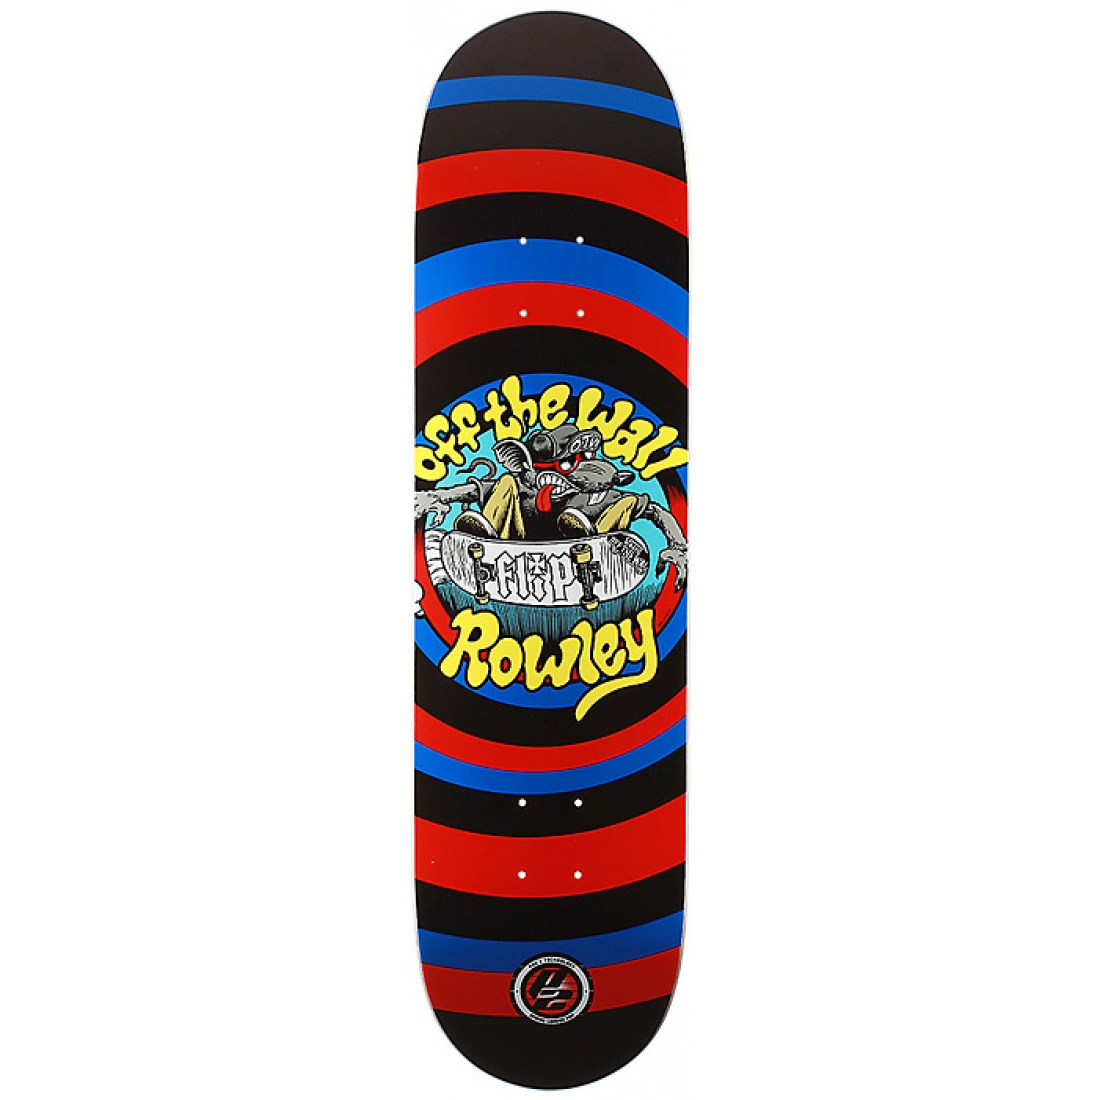 FLP-Rowley Cruise or Lose Pro2 8.0 Deck